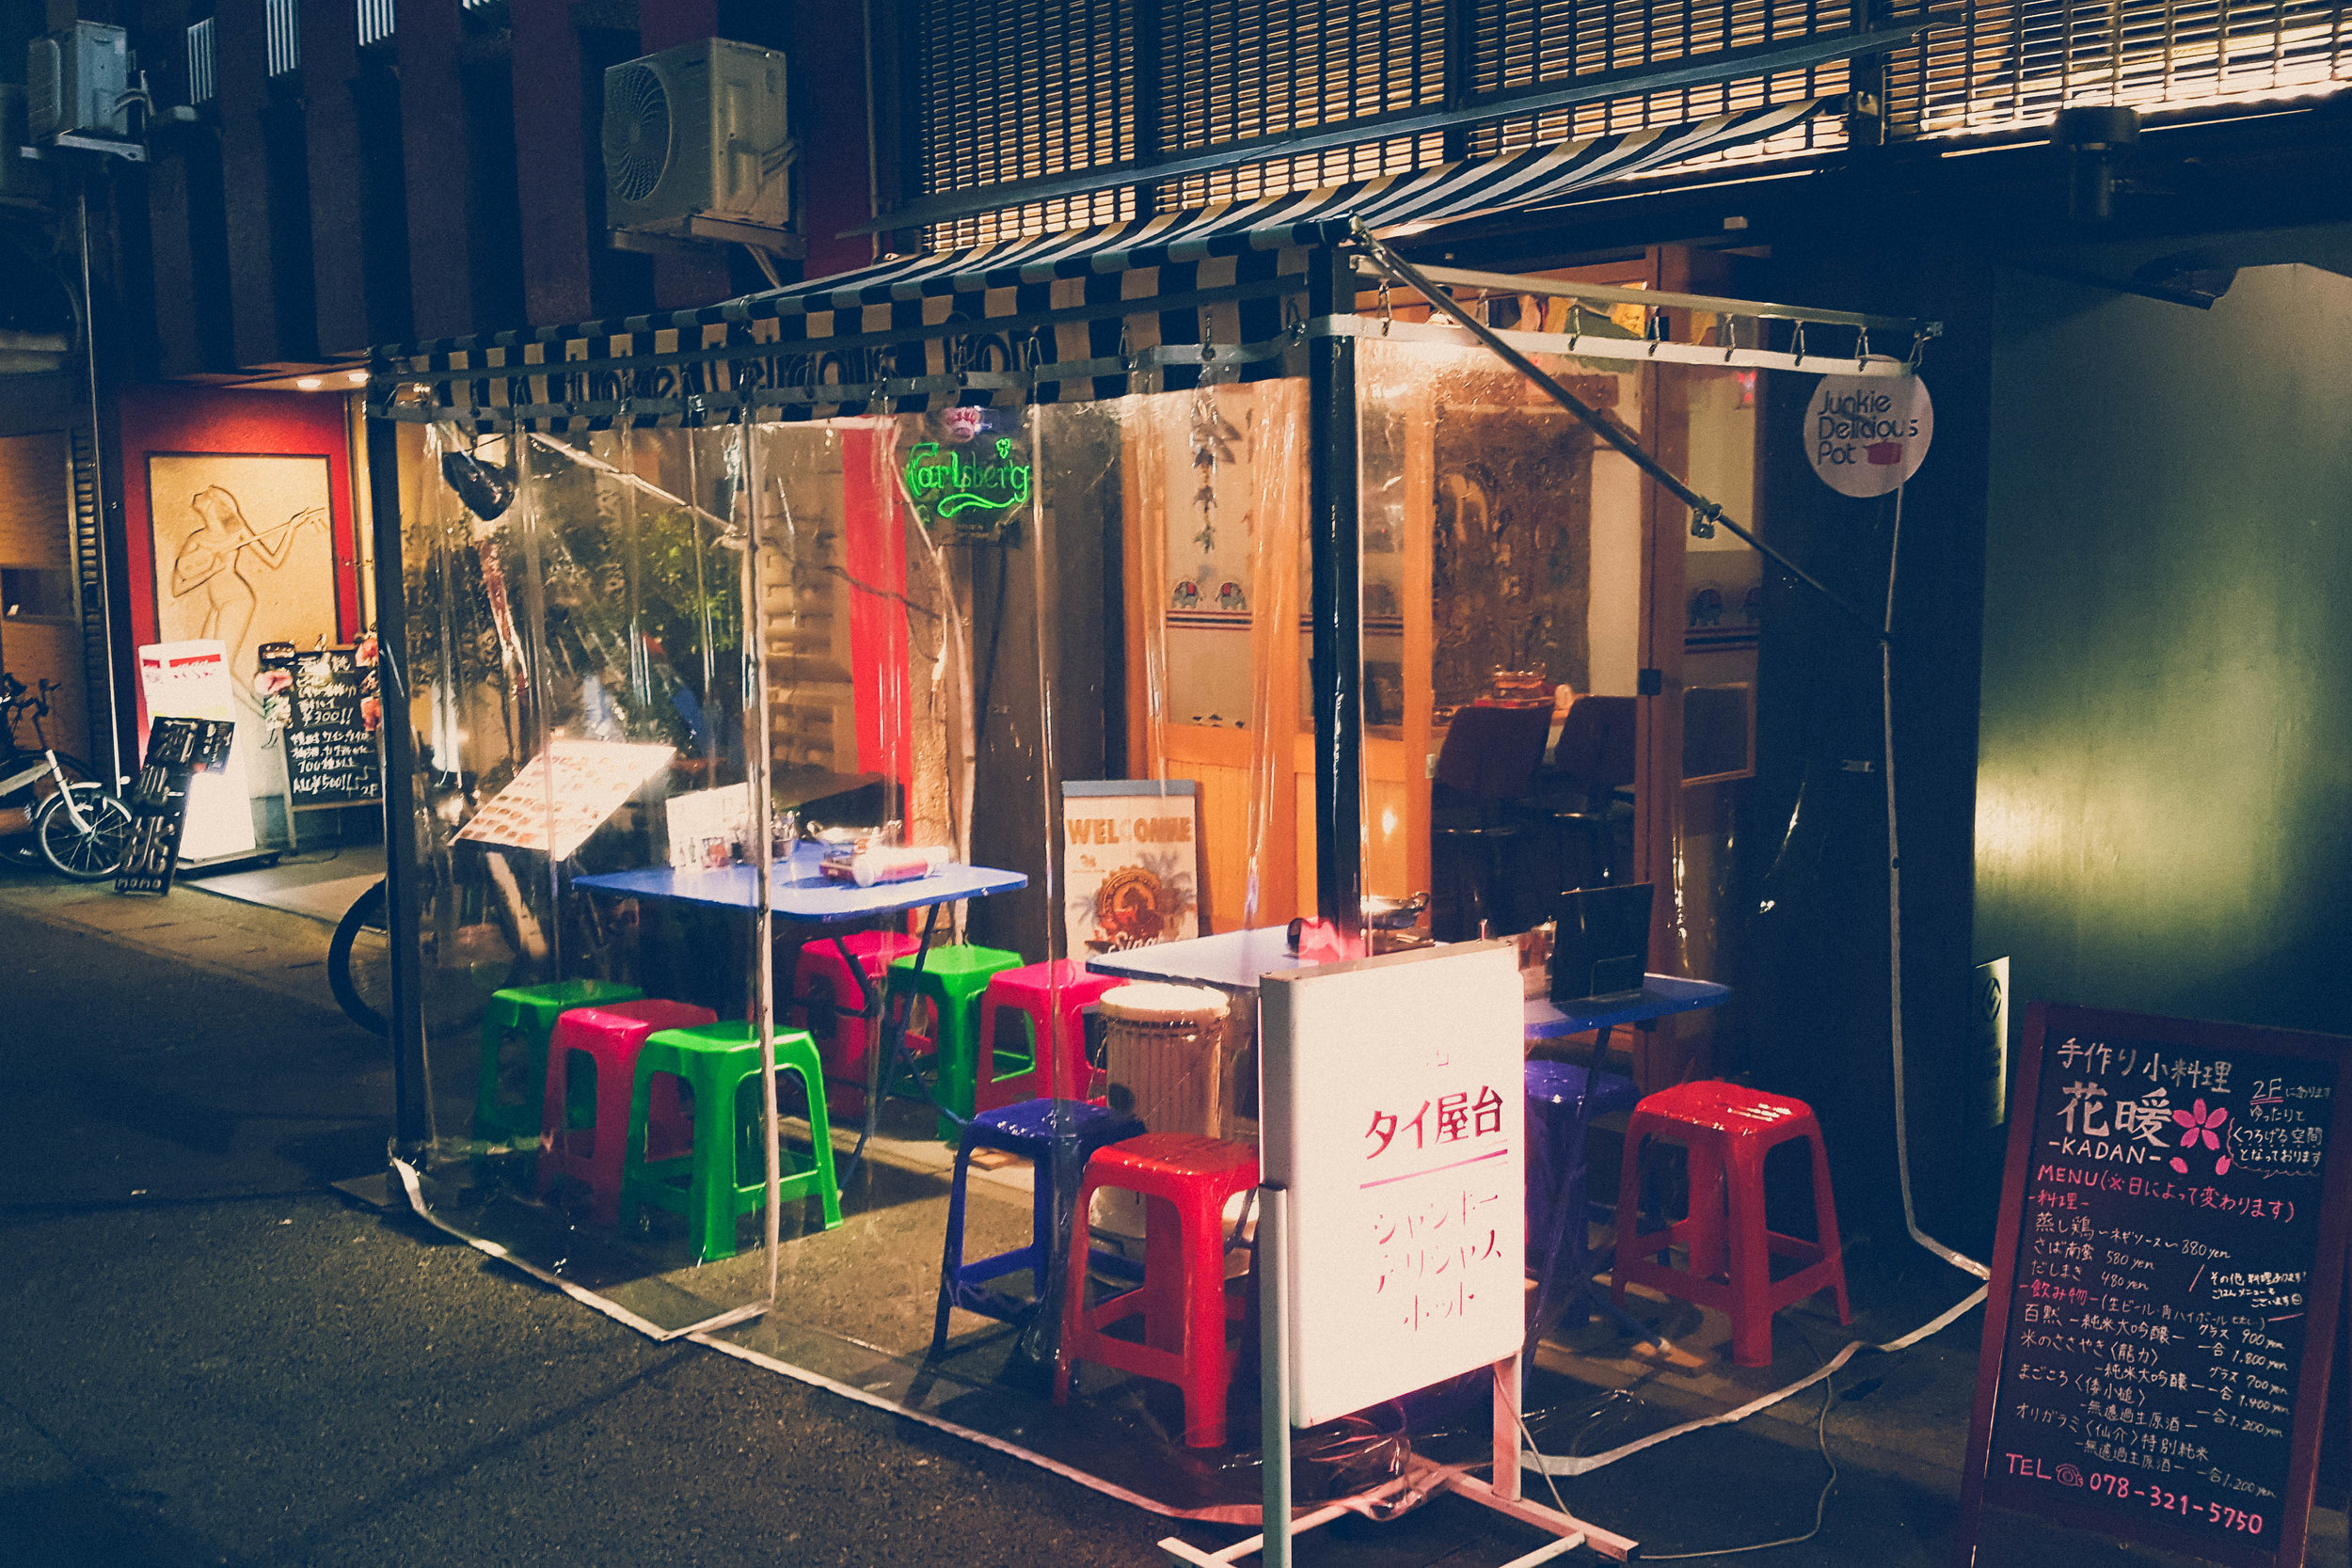 A colorful bar in Kobe